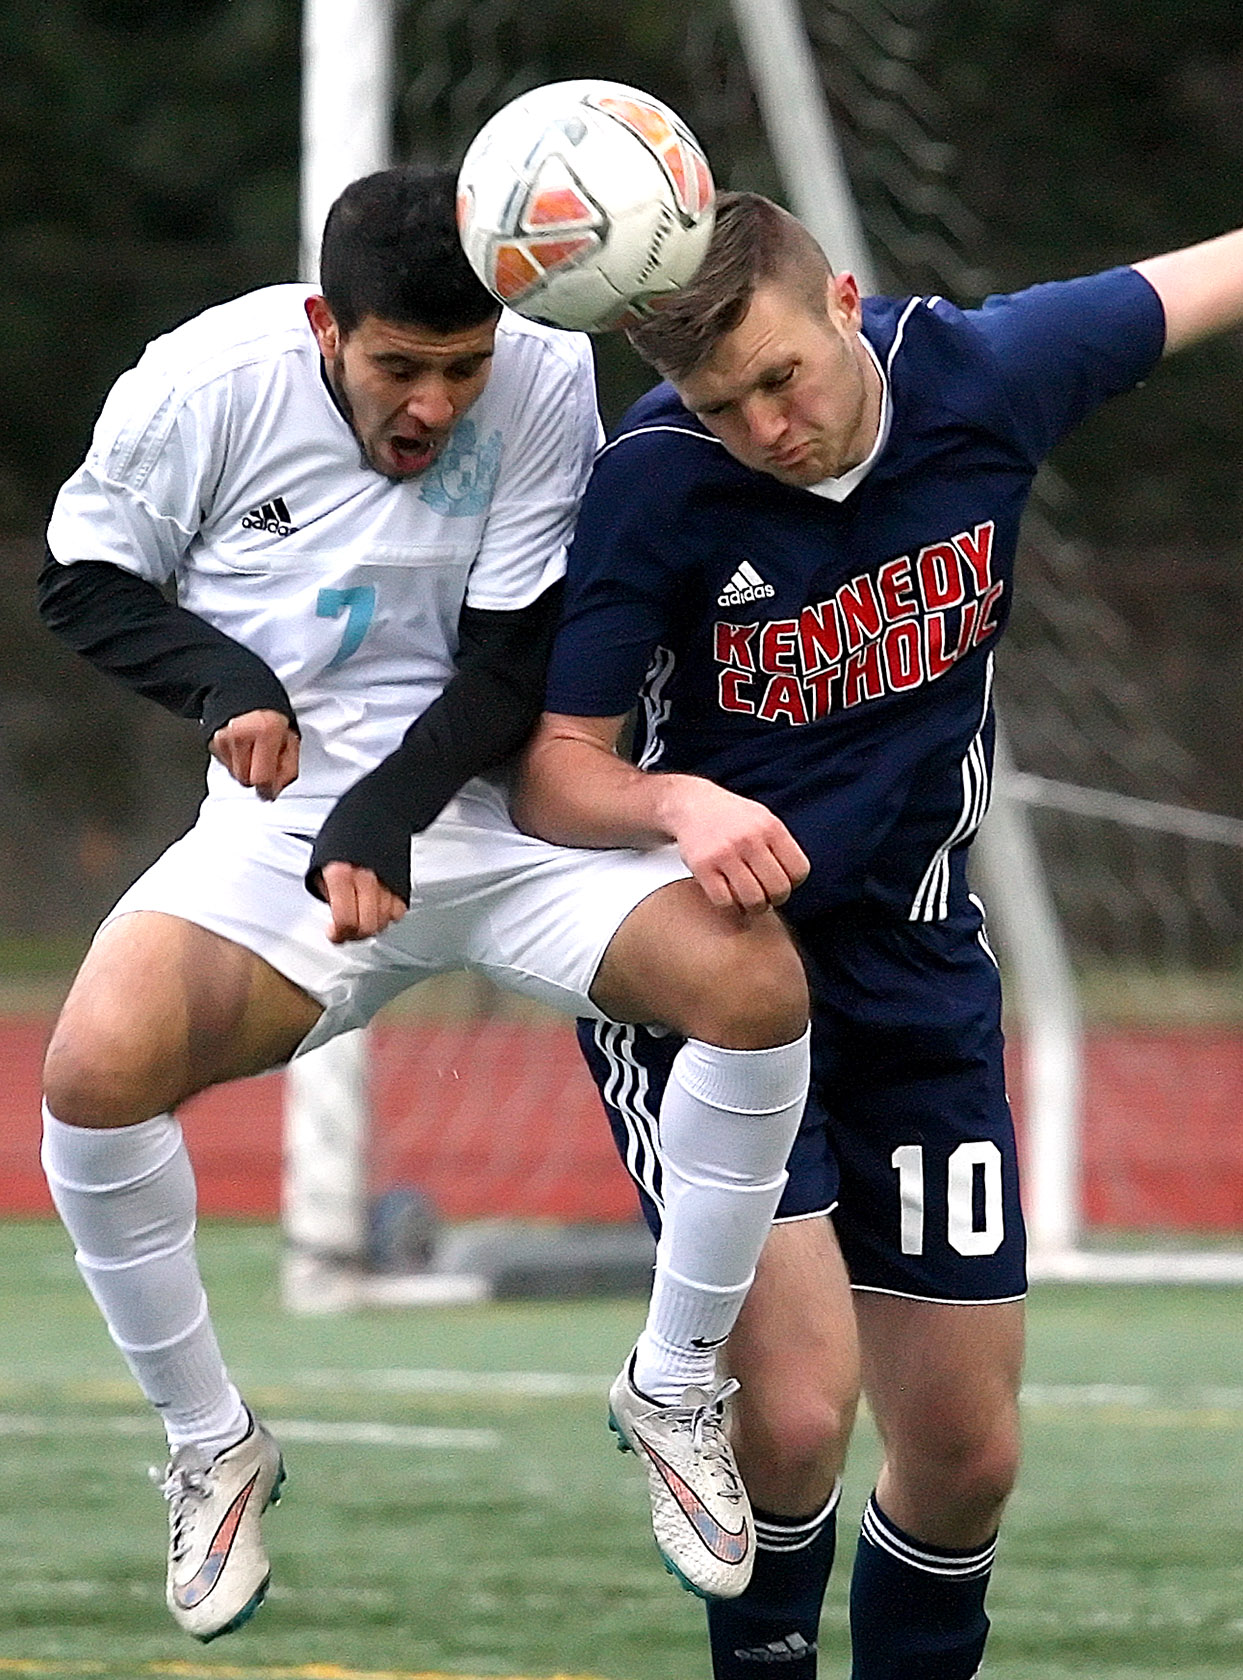 Mustafa Alobaidi of Mt. Rainier and Kennedy Catholic's Aiden Berg both head the ball.